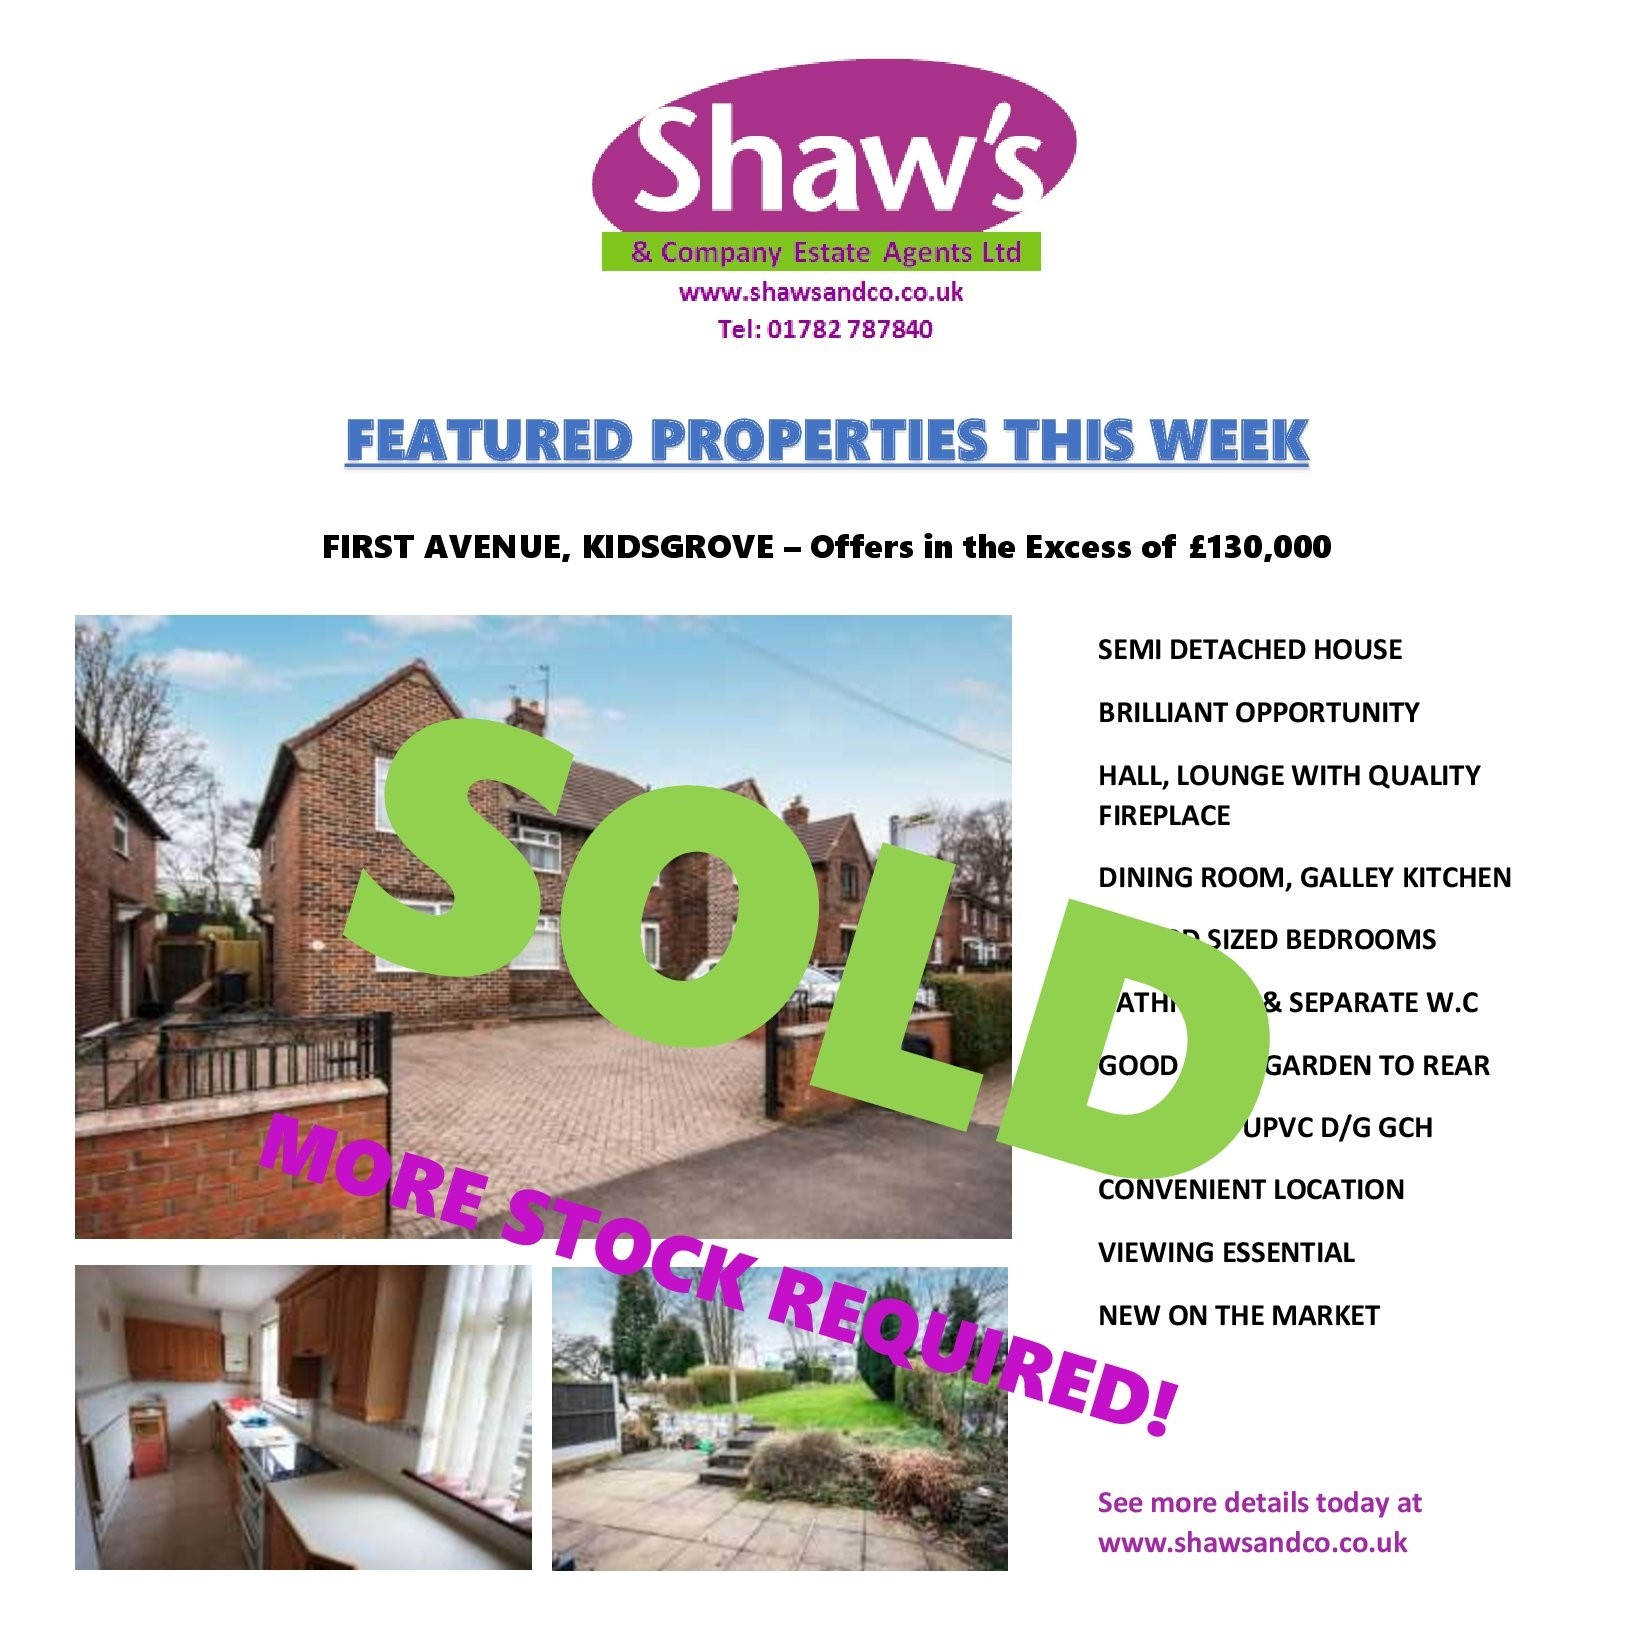 NEW & FEATURED PROPERTIES OF THE WEEK!